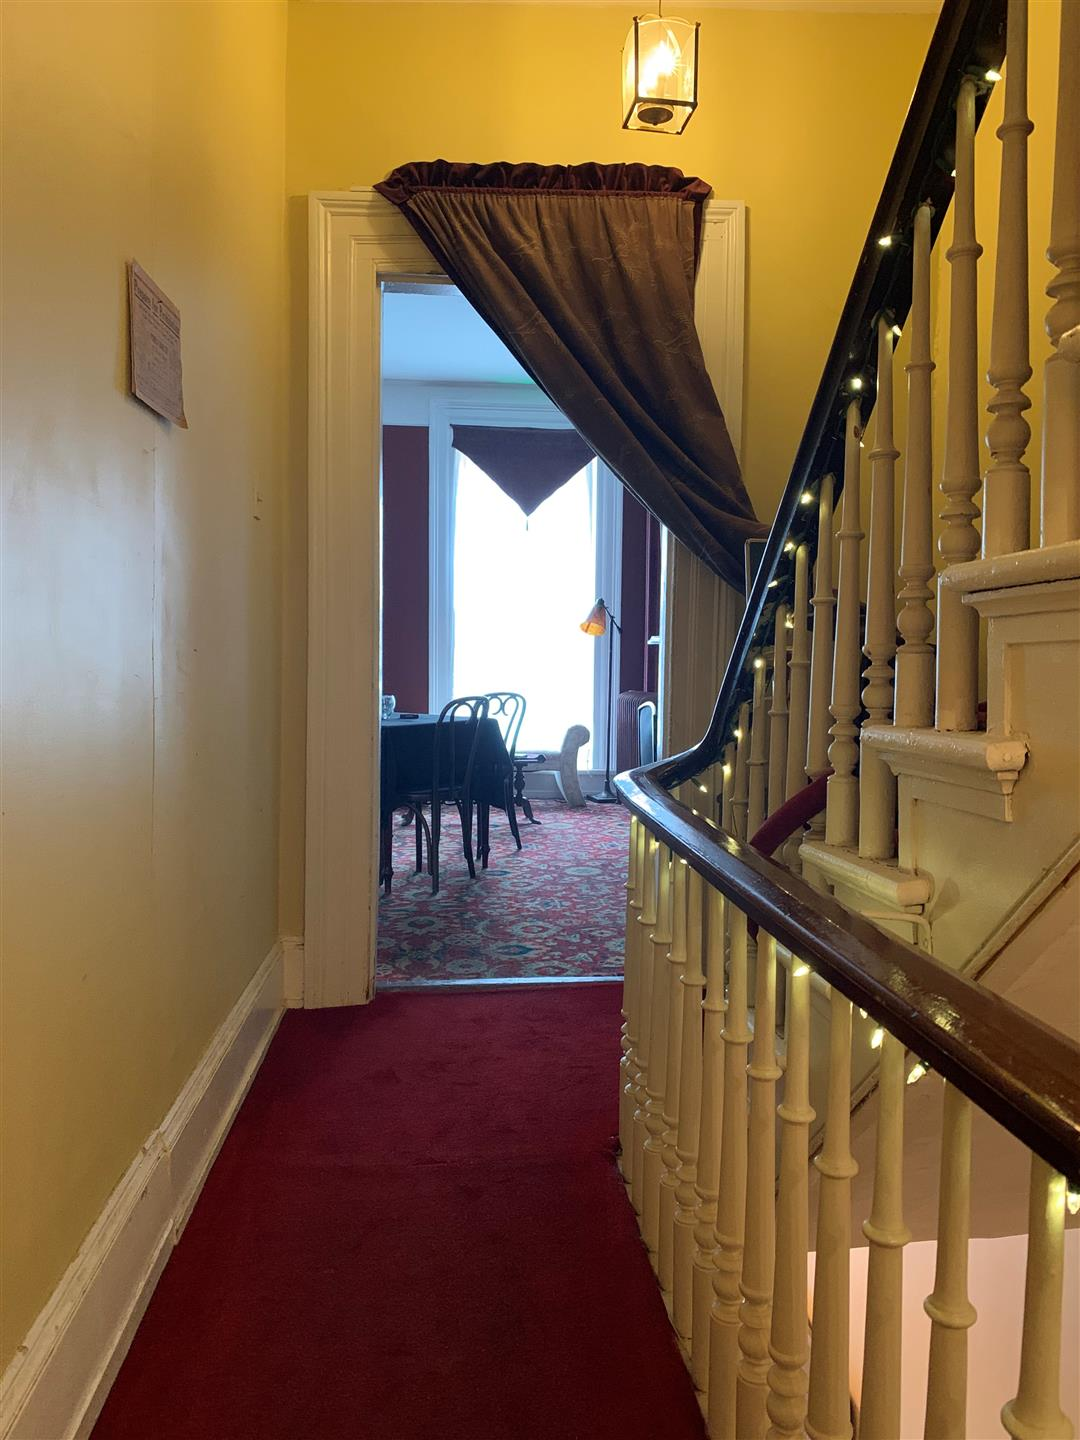 Hall way leading up to dining room with stair case on the righthand side